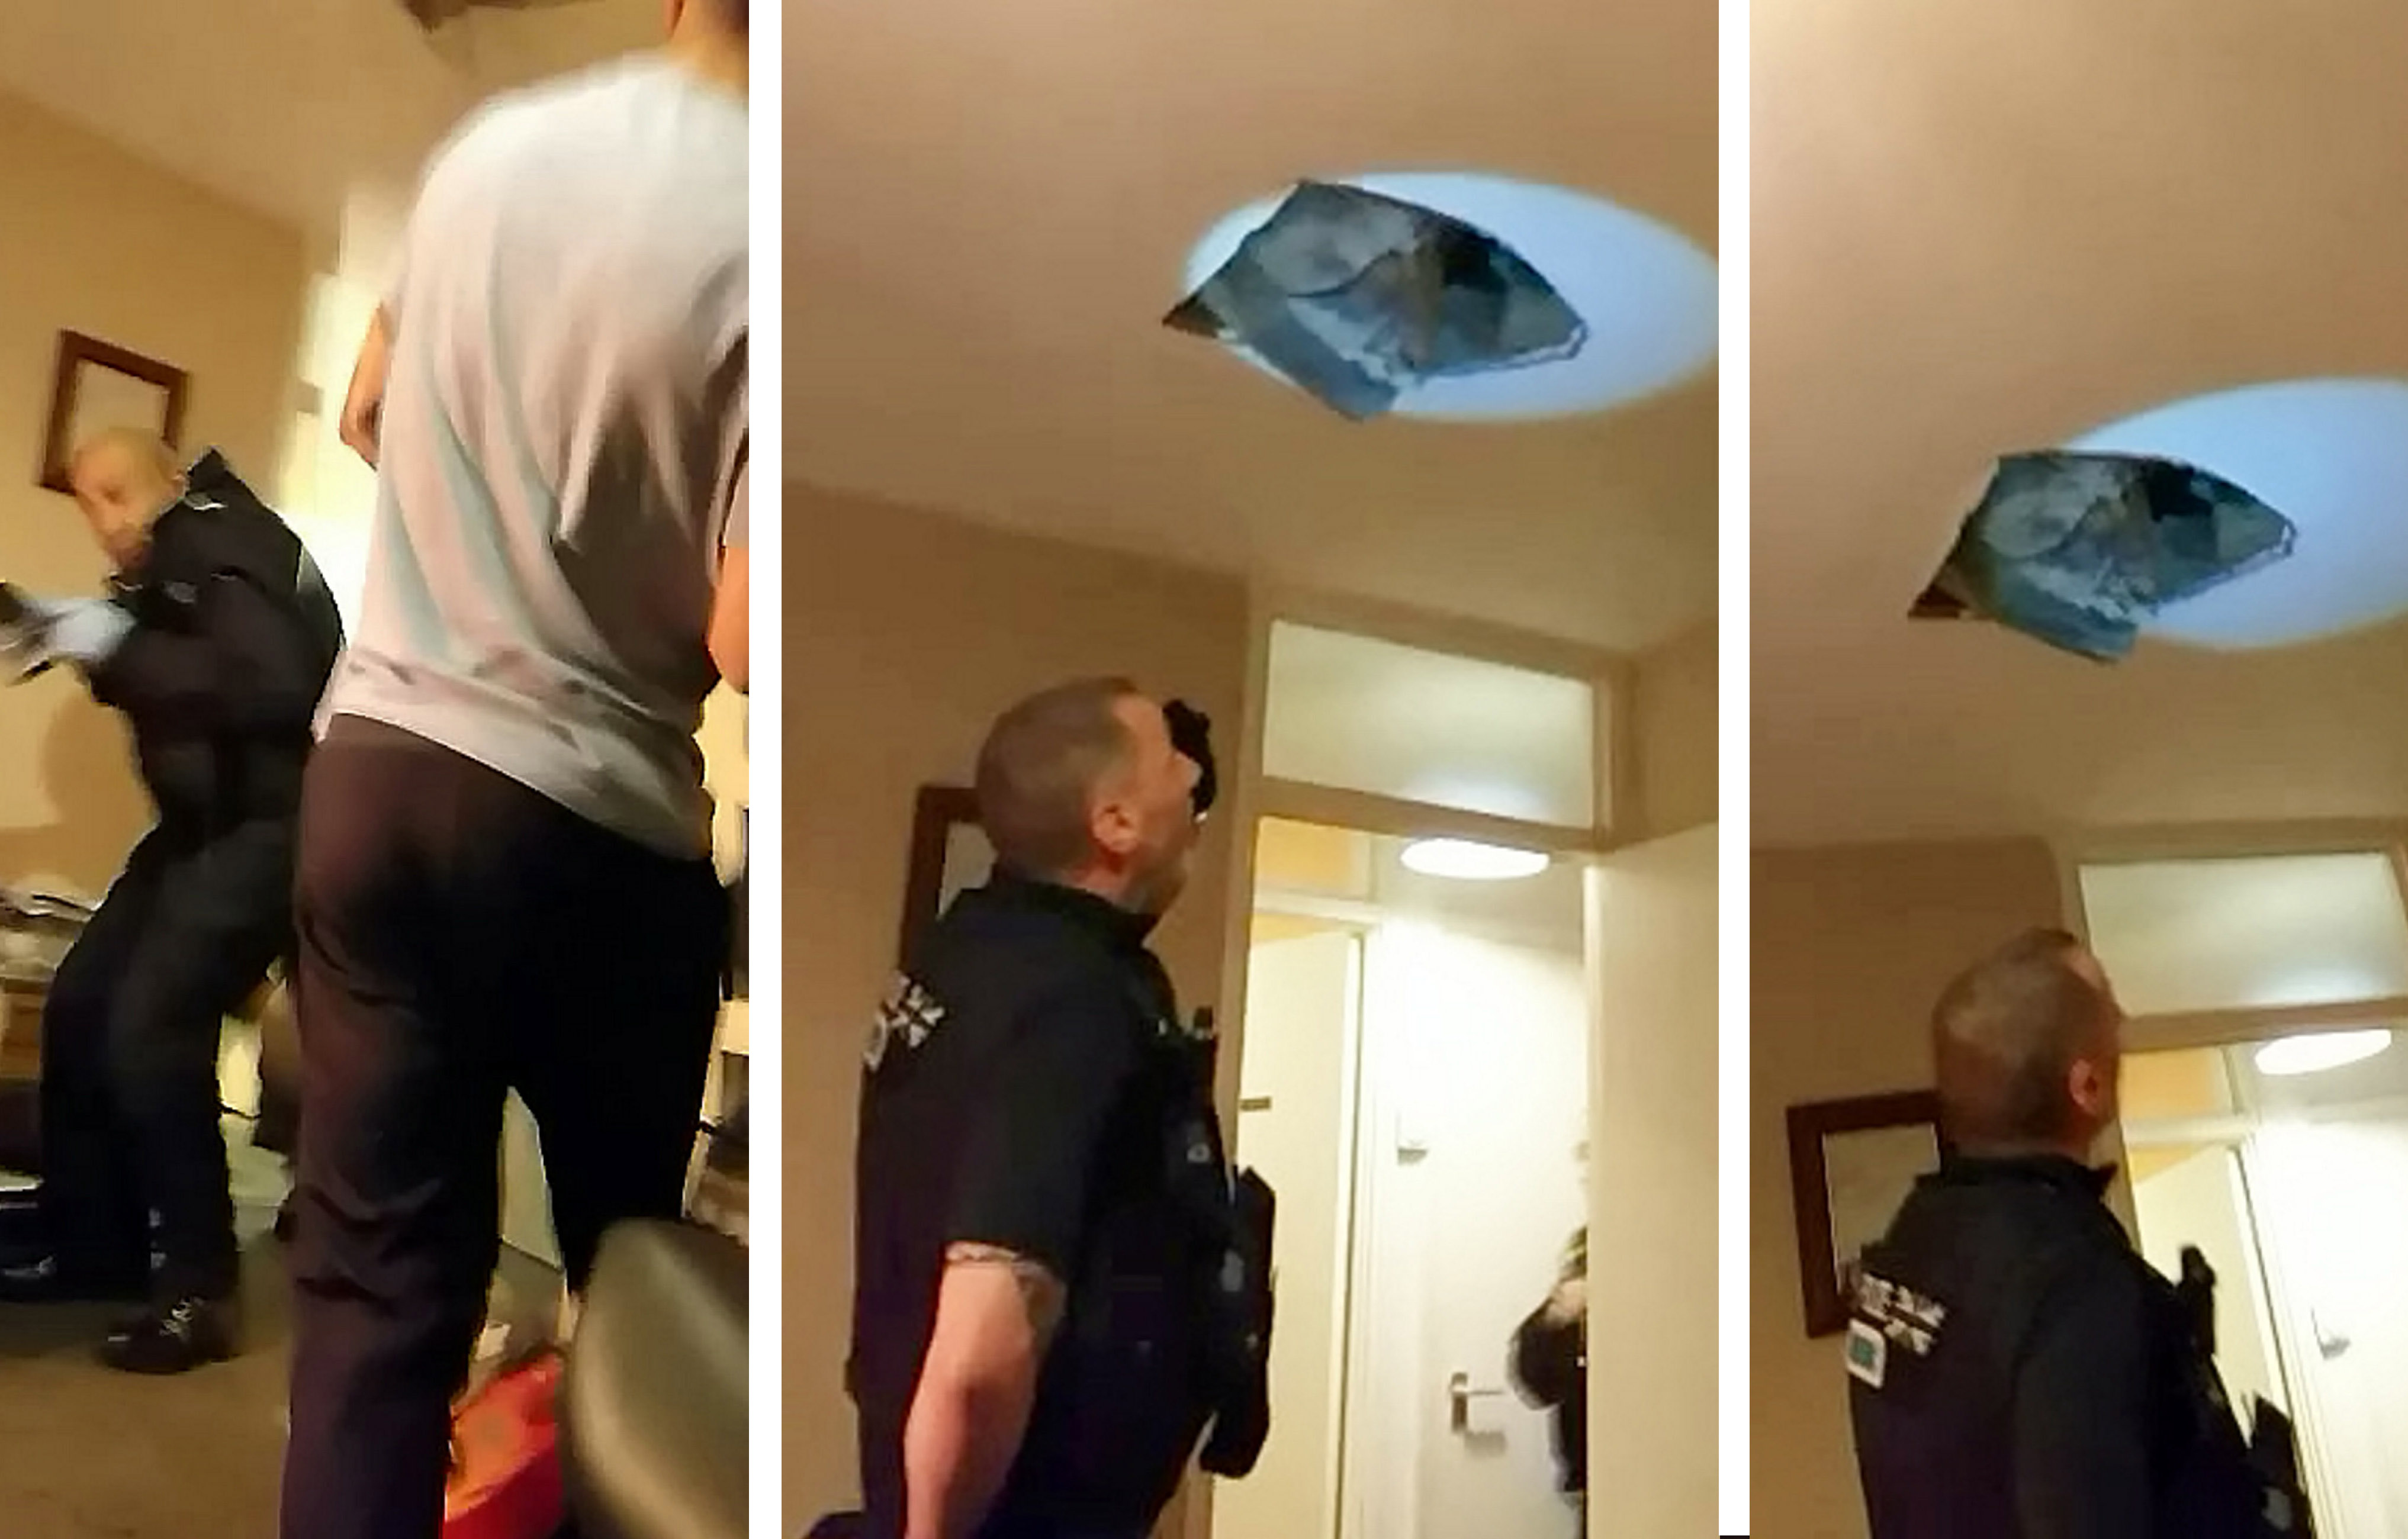 suspect falls through roof